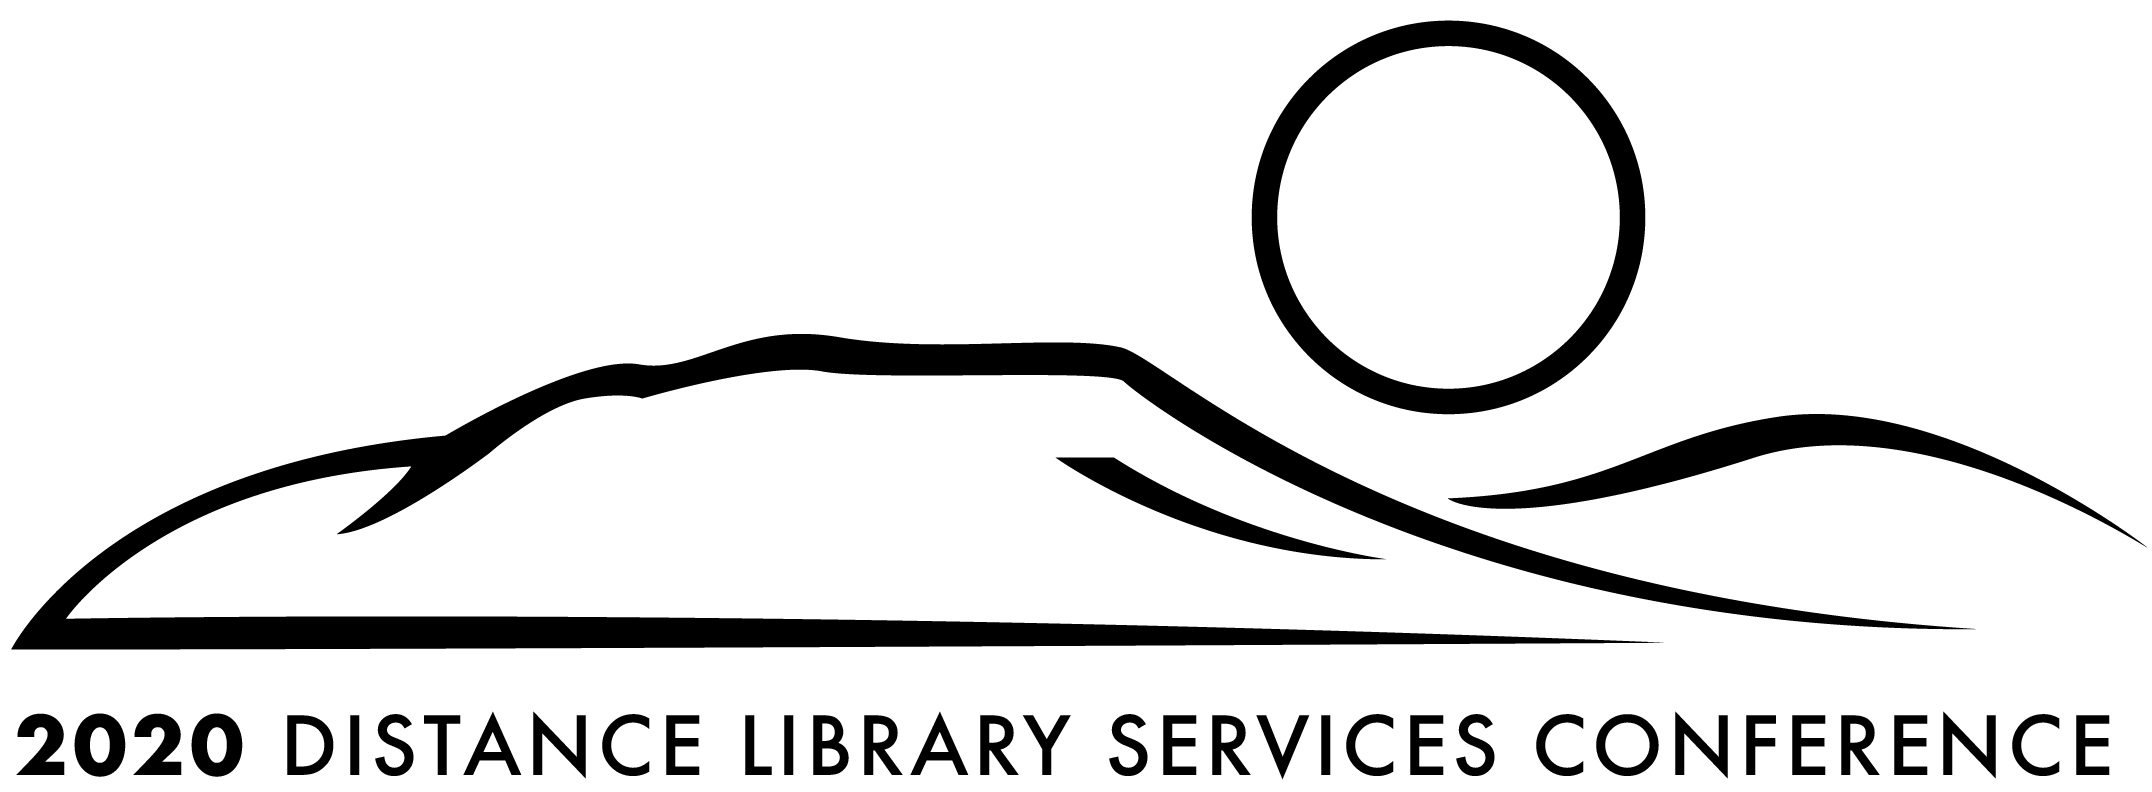 Distance Library Services Conference